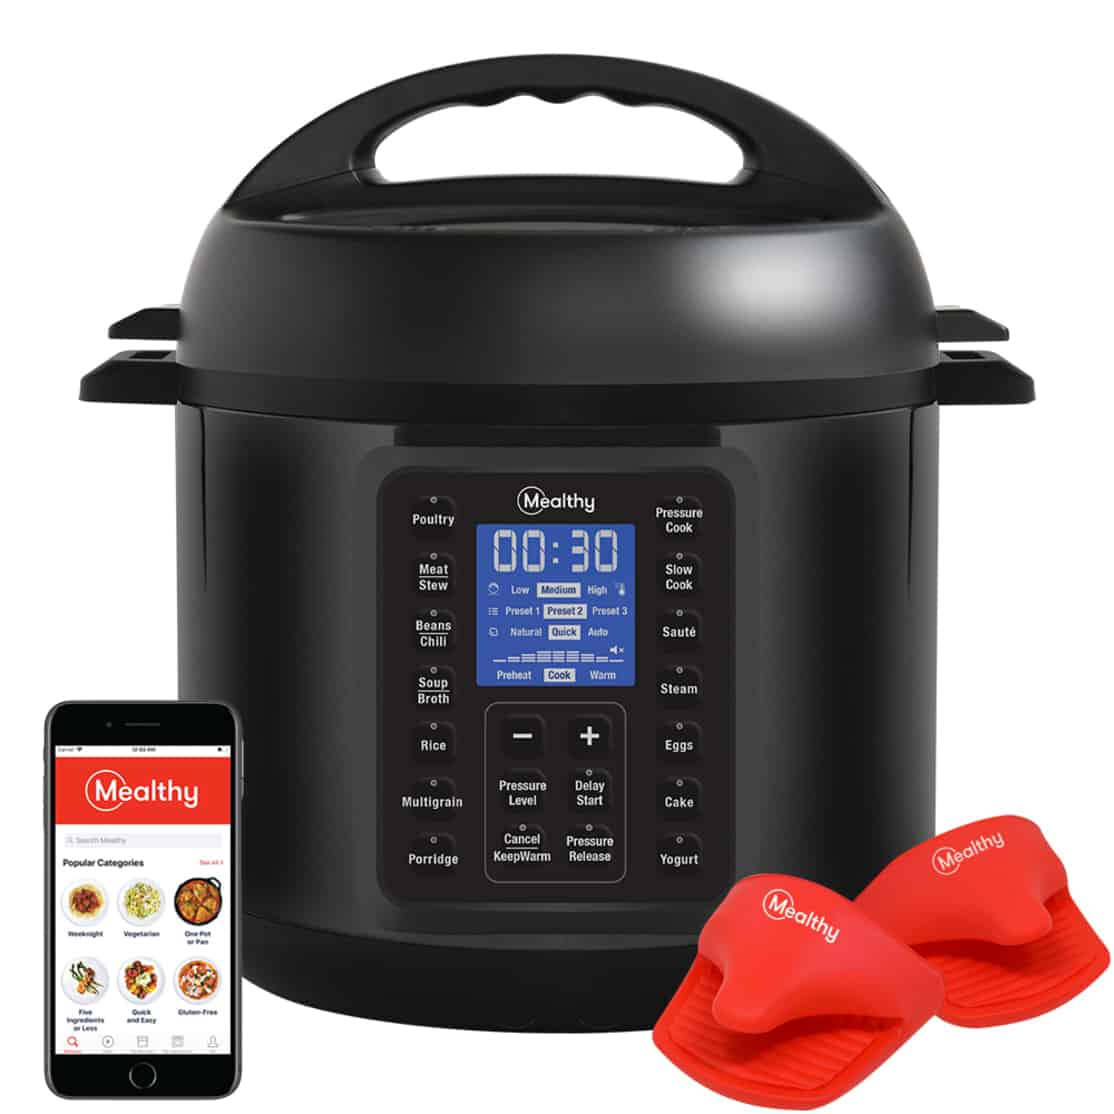 Mealthy MultiPot 2.0 - Mealthy.com